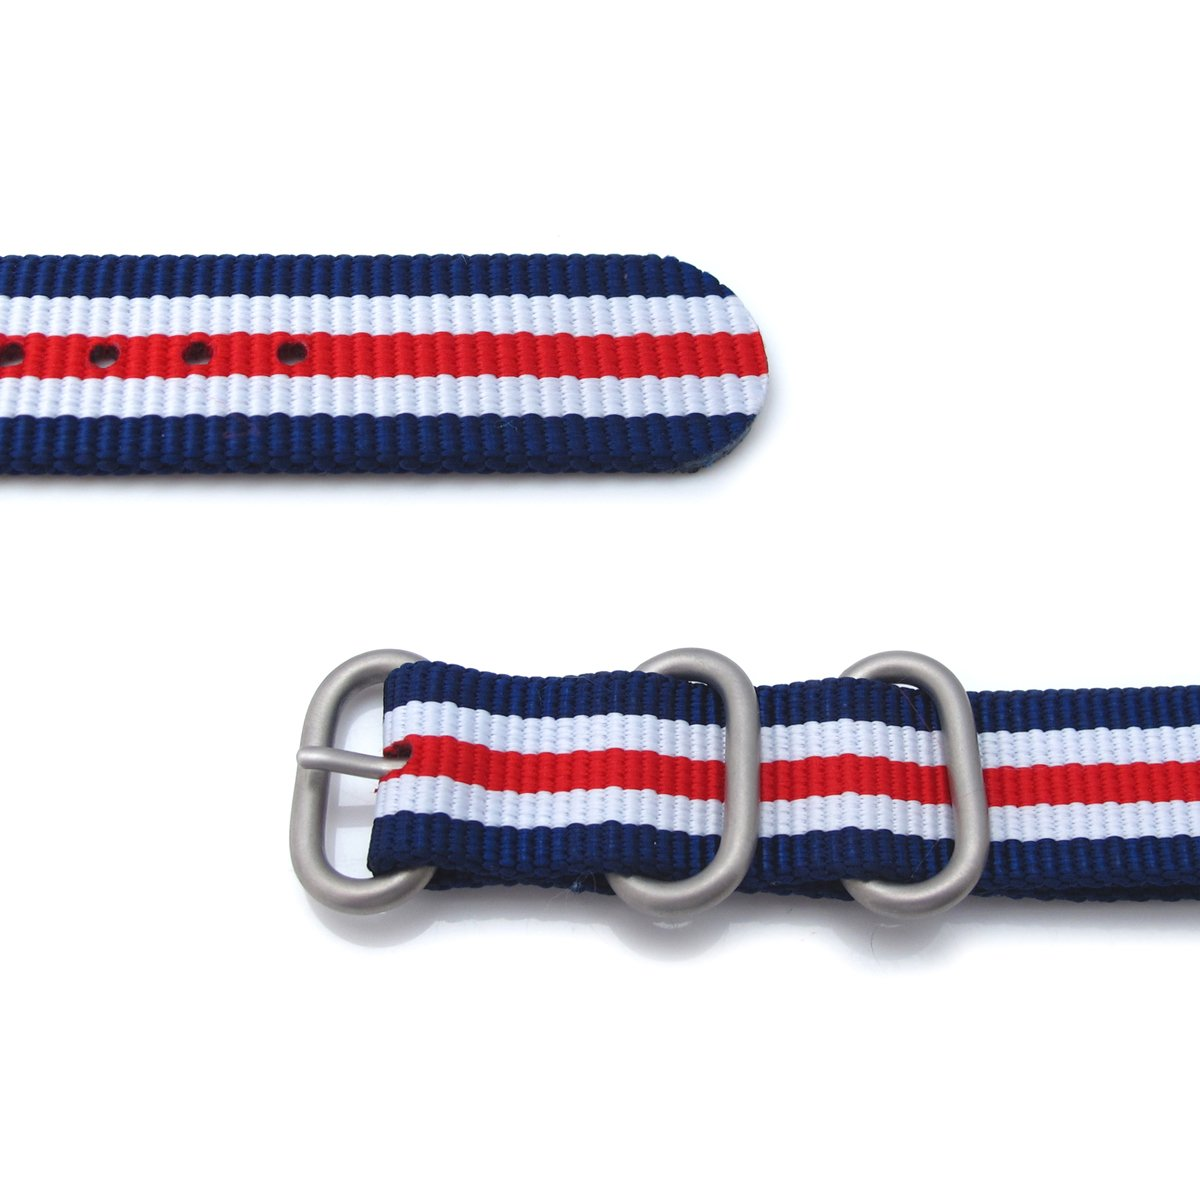 MiLTAT 20mm Zulu military watch strap ballistic nylon armband Brushed Blue White Red Strapcode Watch Bands